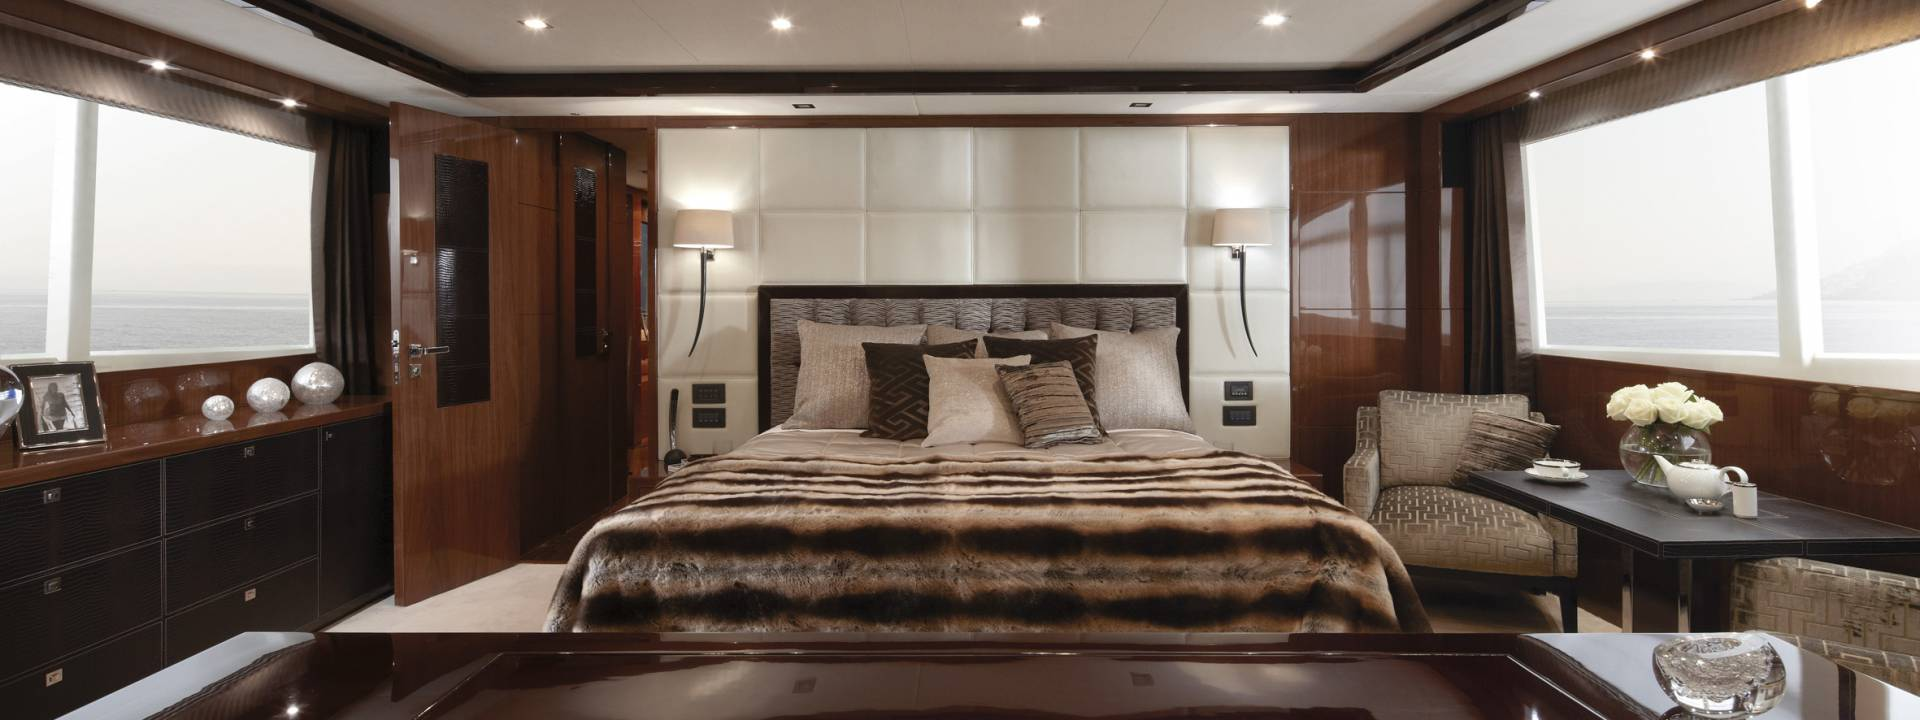 Get Inside This Luxury Yachts with Gorgeous Interiors luxury yachts Get Inside This Luxury Yachts with Gorgeous Interiors Get Inside This Luxury Yachts with Gorgeous Interiors6